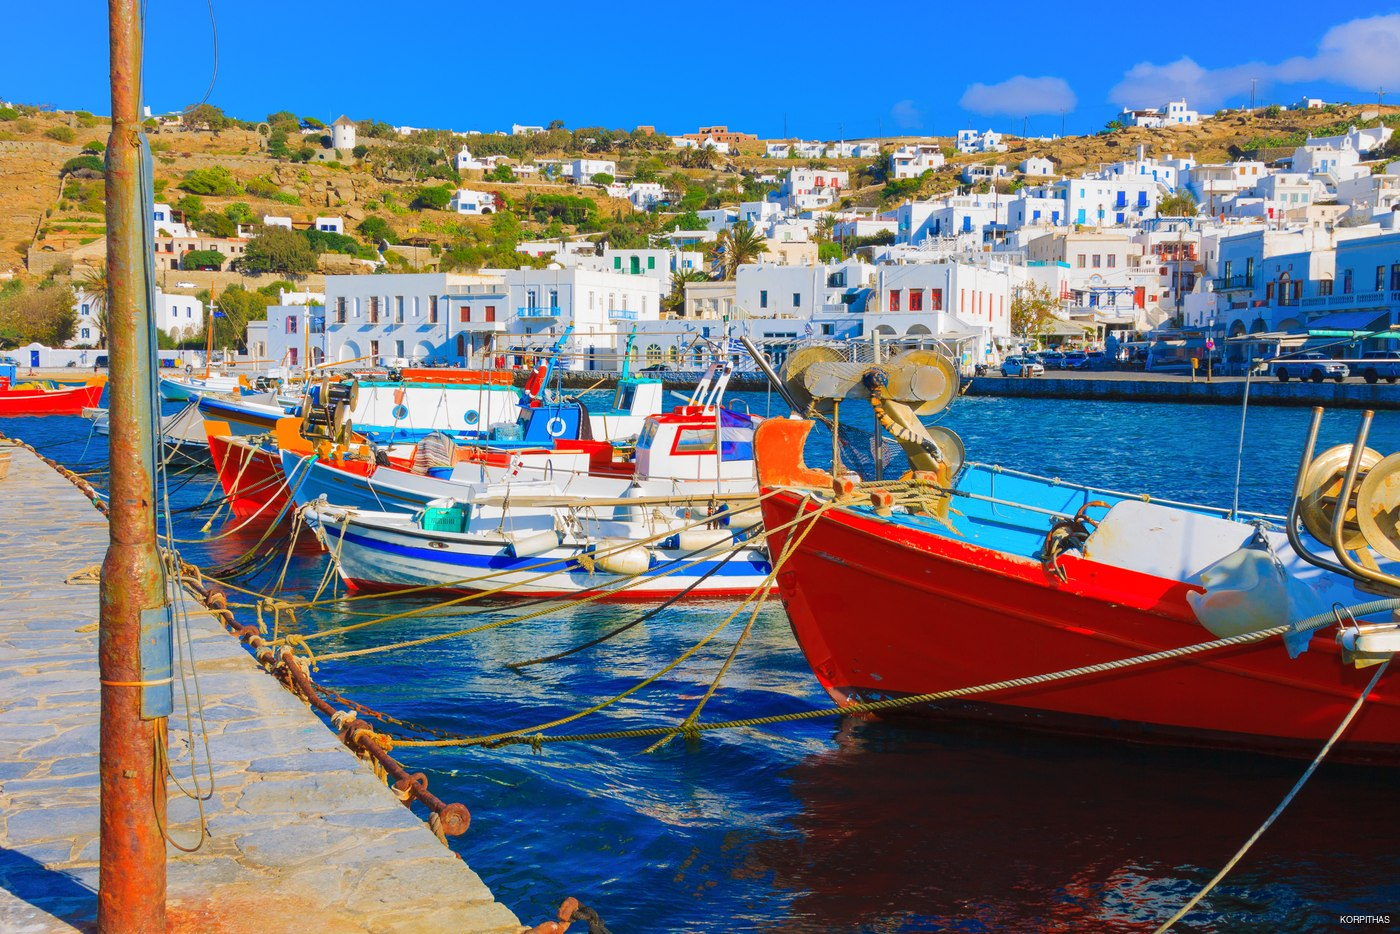 See the famous Mykonos Windmills in Greece while eating at a local restaurant